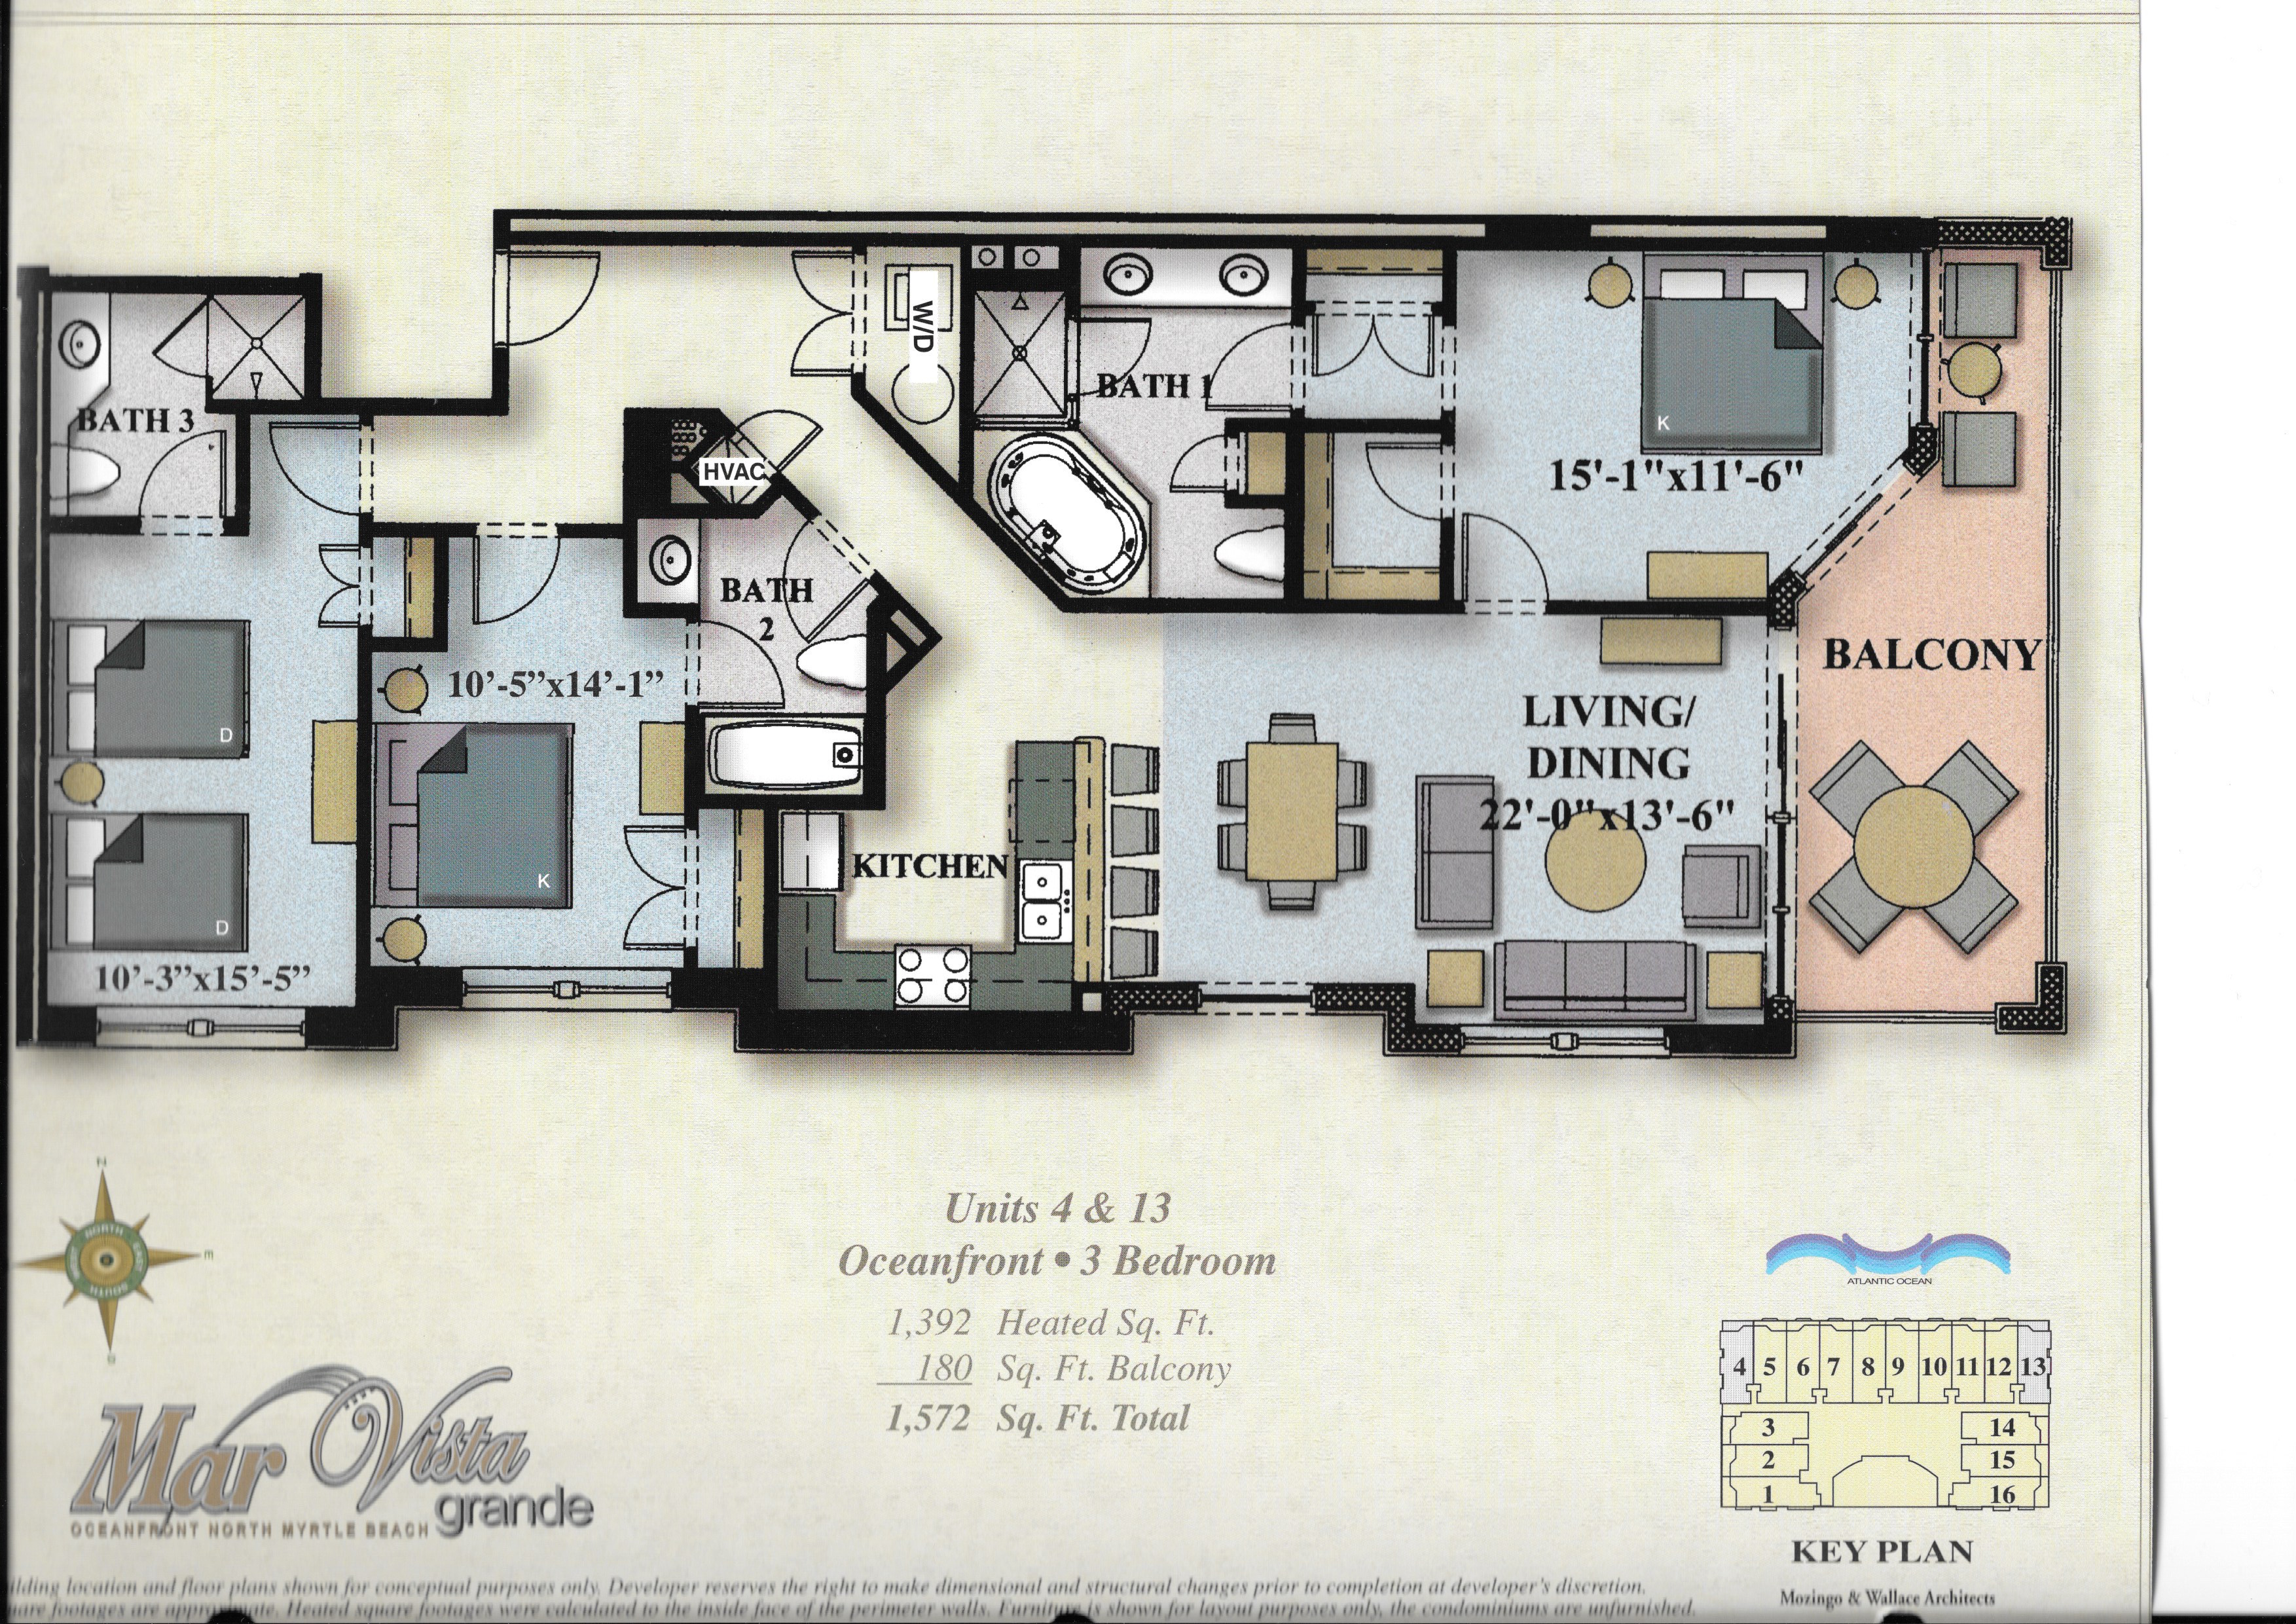 Floor Plan for Mar Vista Grande in North Myrtle Beach SC